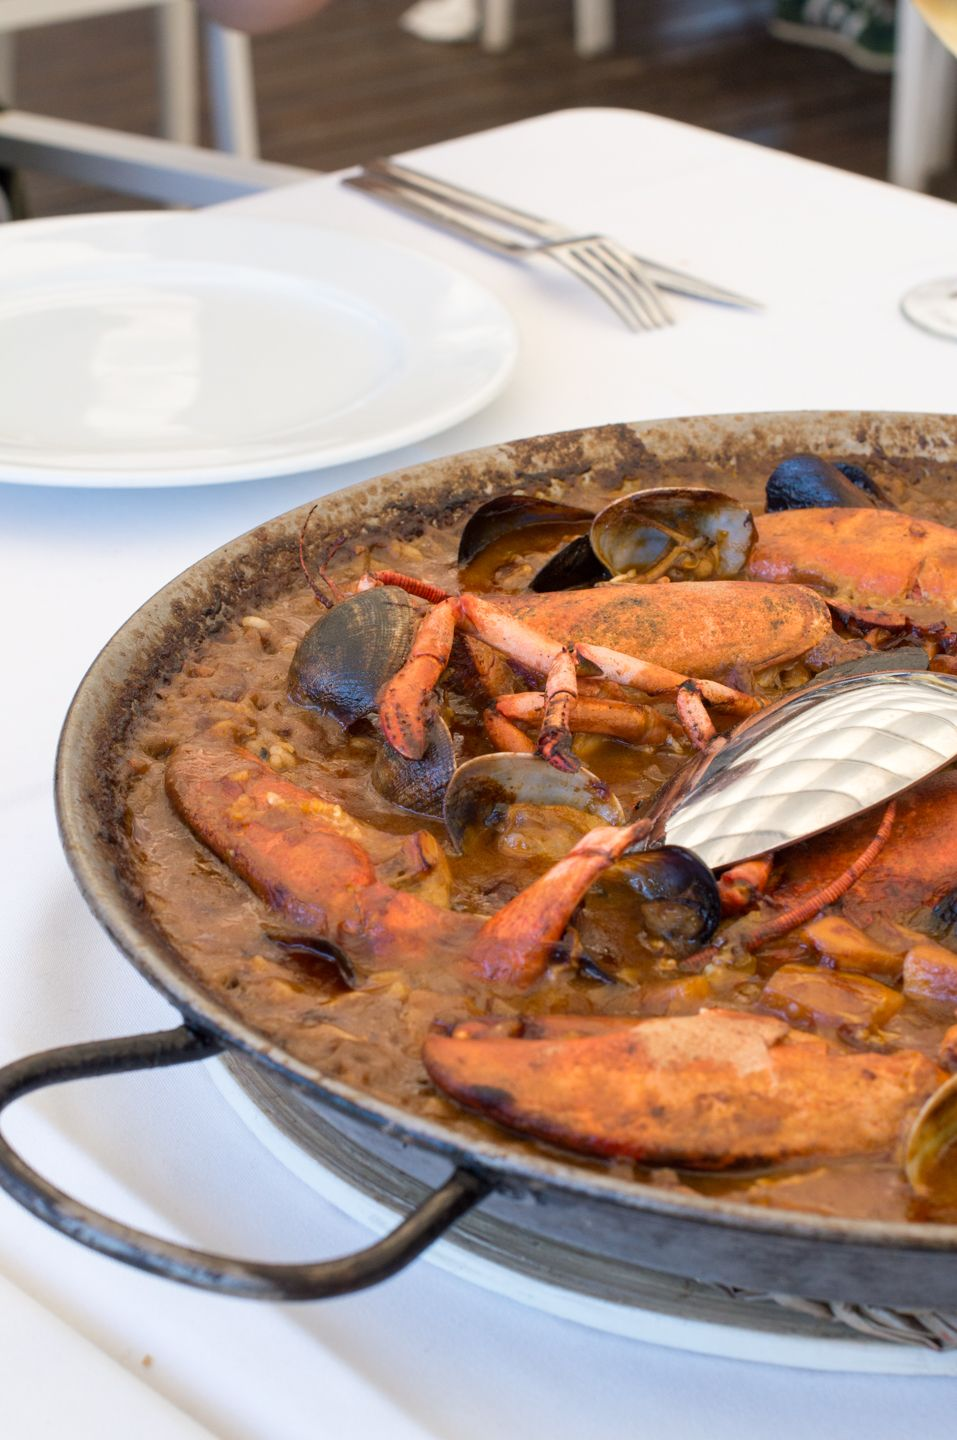 Paella By The Sea At Banys Lluis Sant Pol De Mar Appetite And Other Stories Seafood Restaurant Food Paella